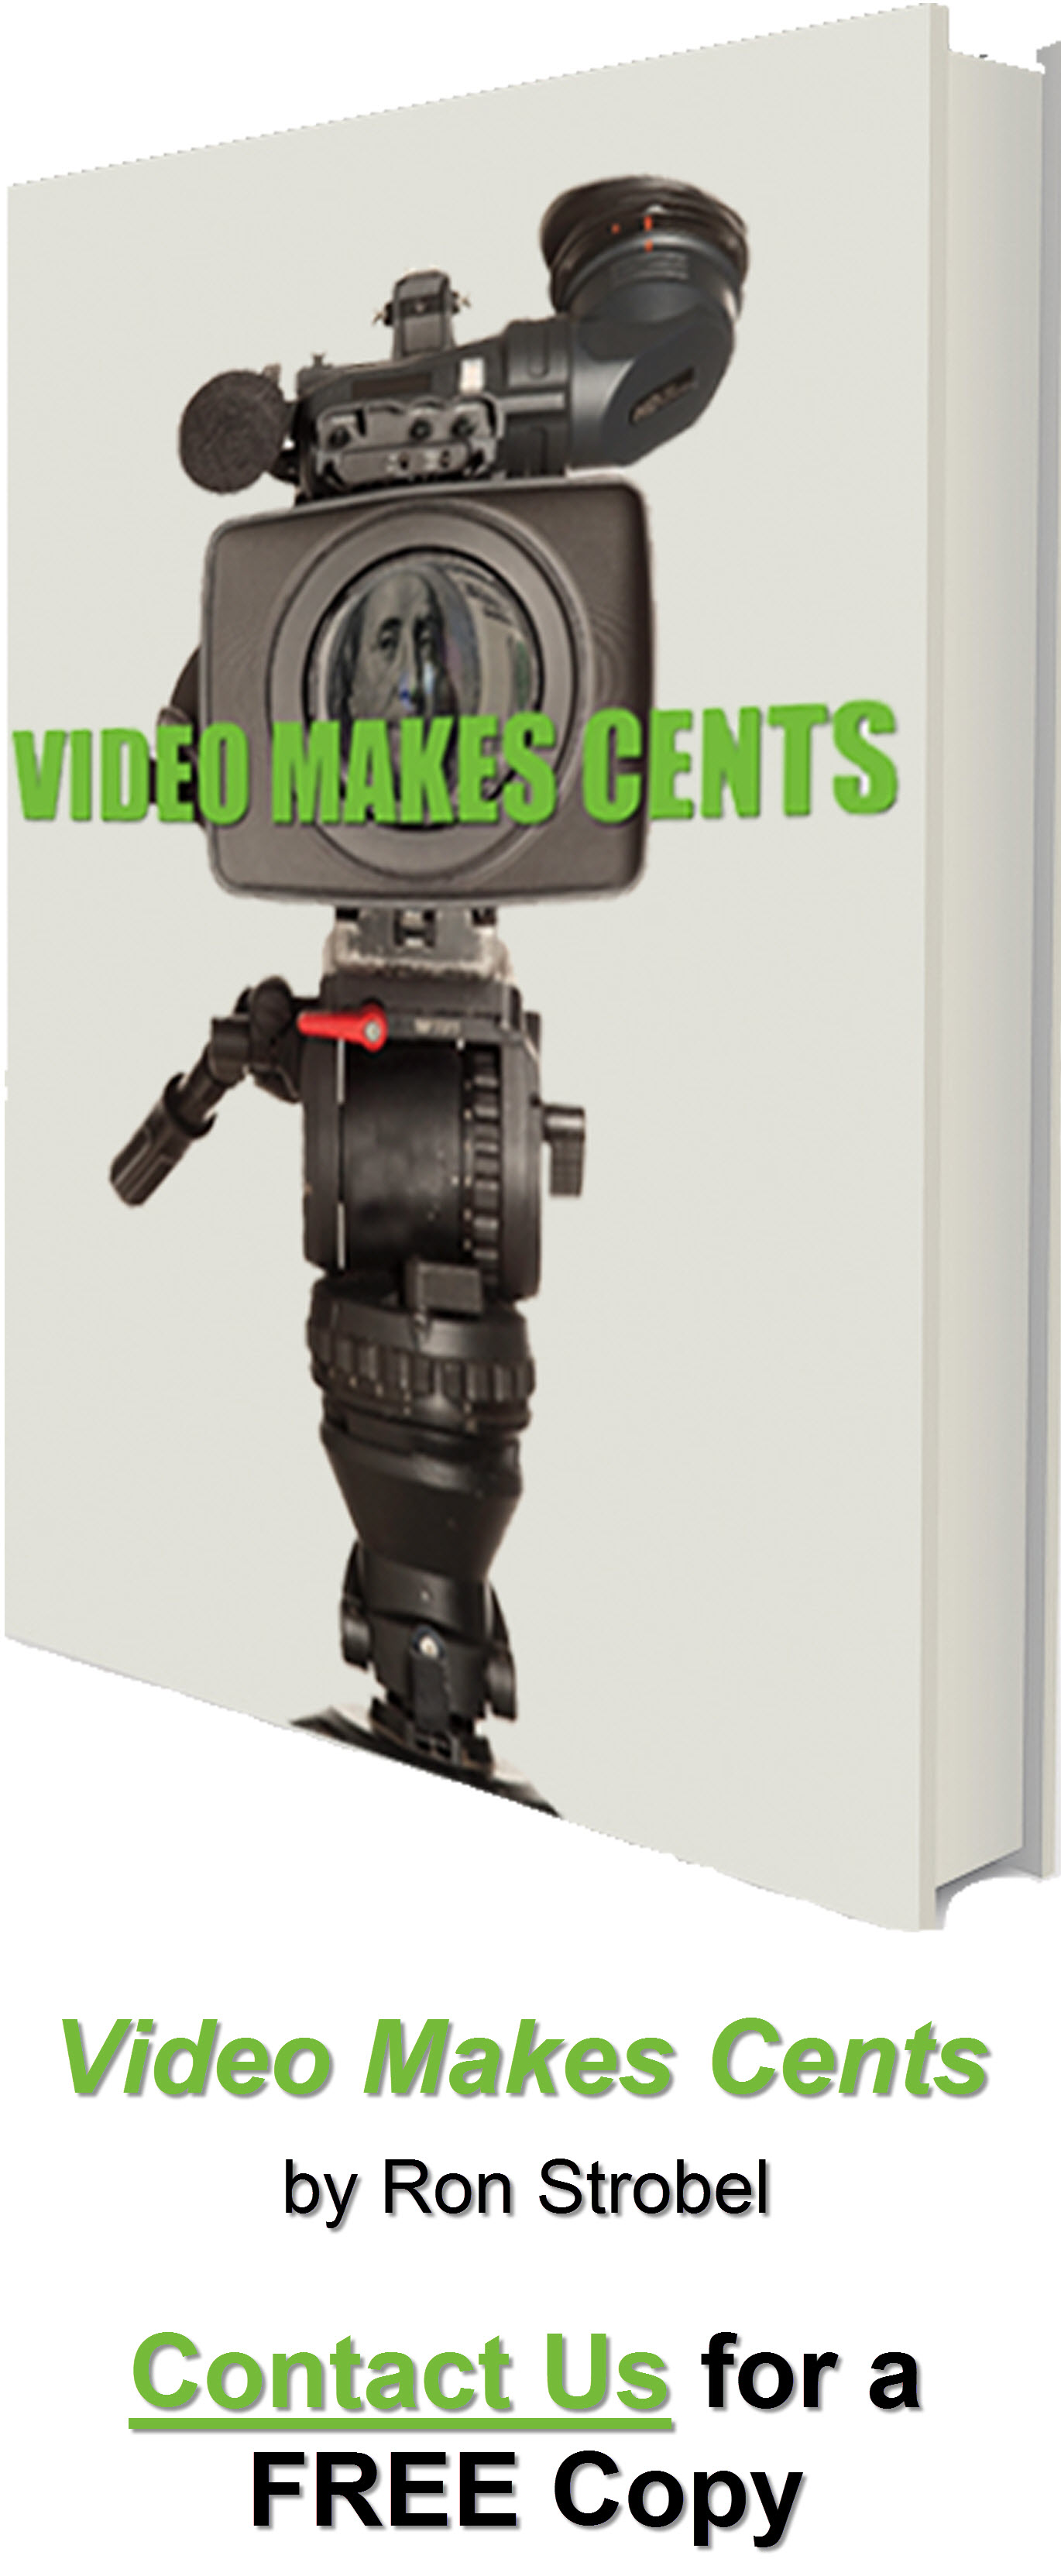 Corporate Video Production | Video Makes Cents Book